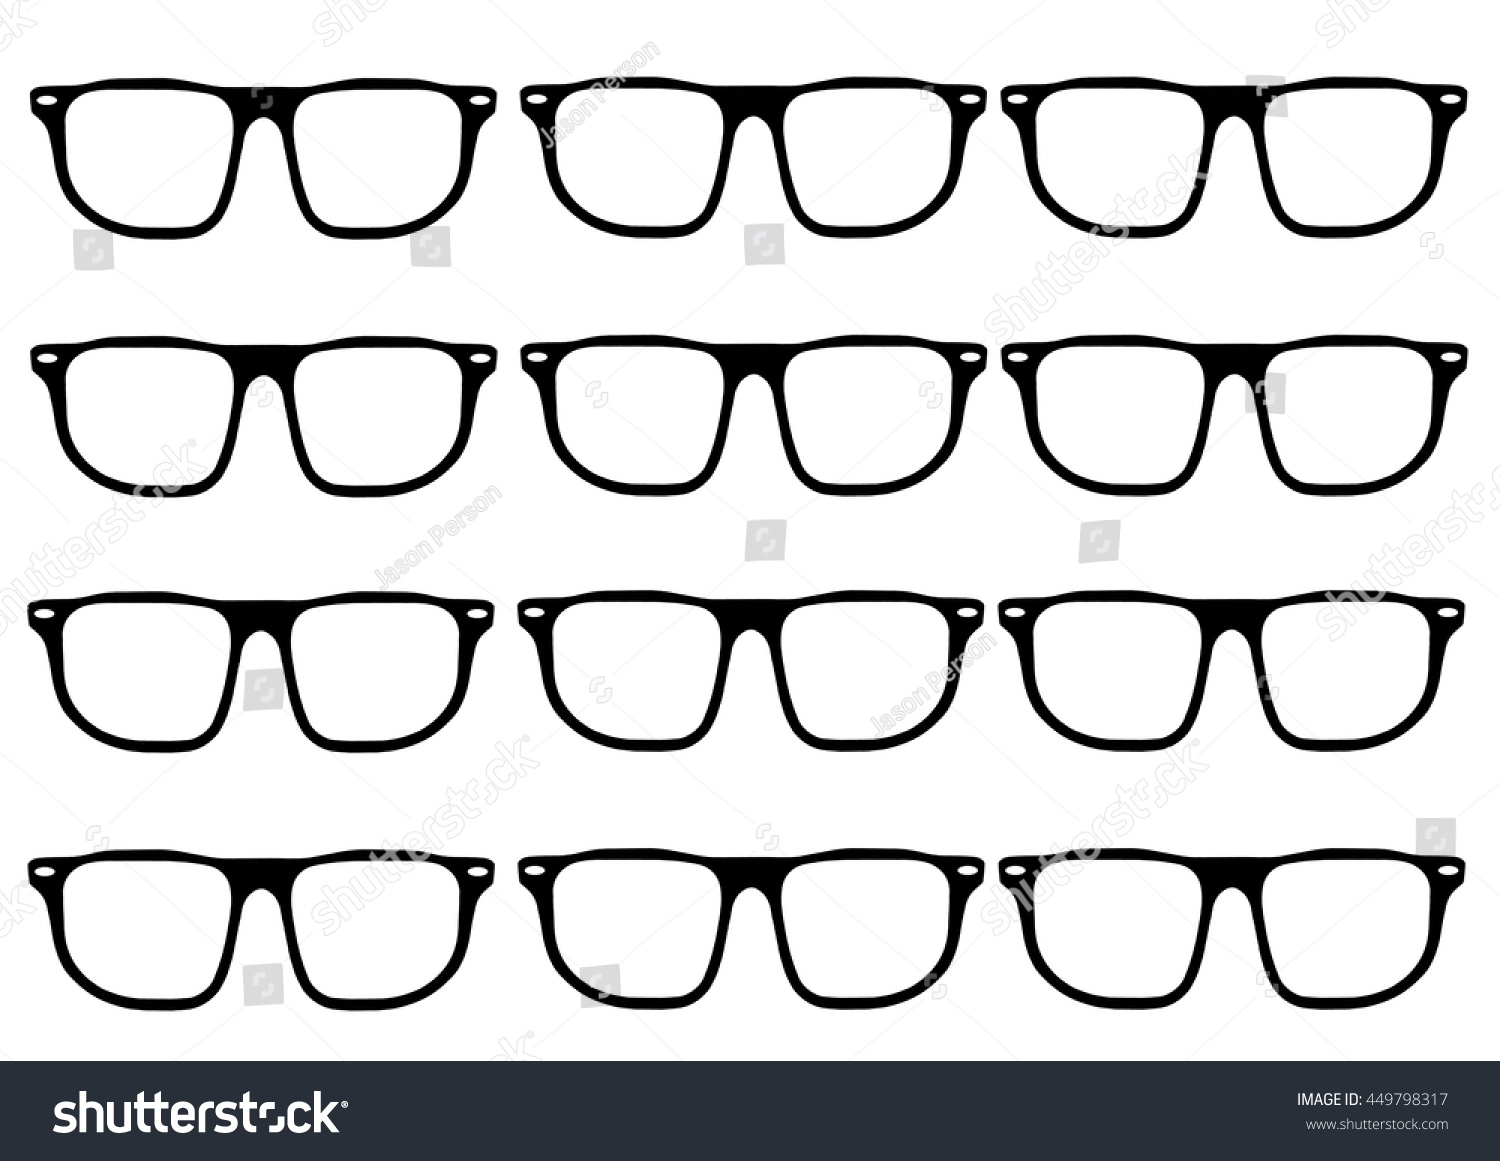 Hipster Glasses Frames Grid Stock Vector HD (Royalty Free) 449798317 ...